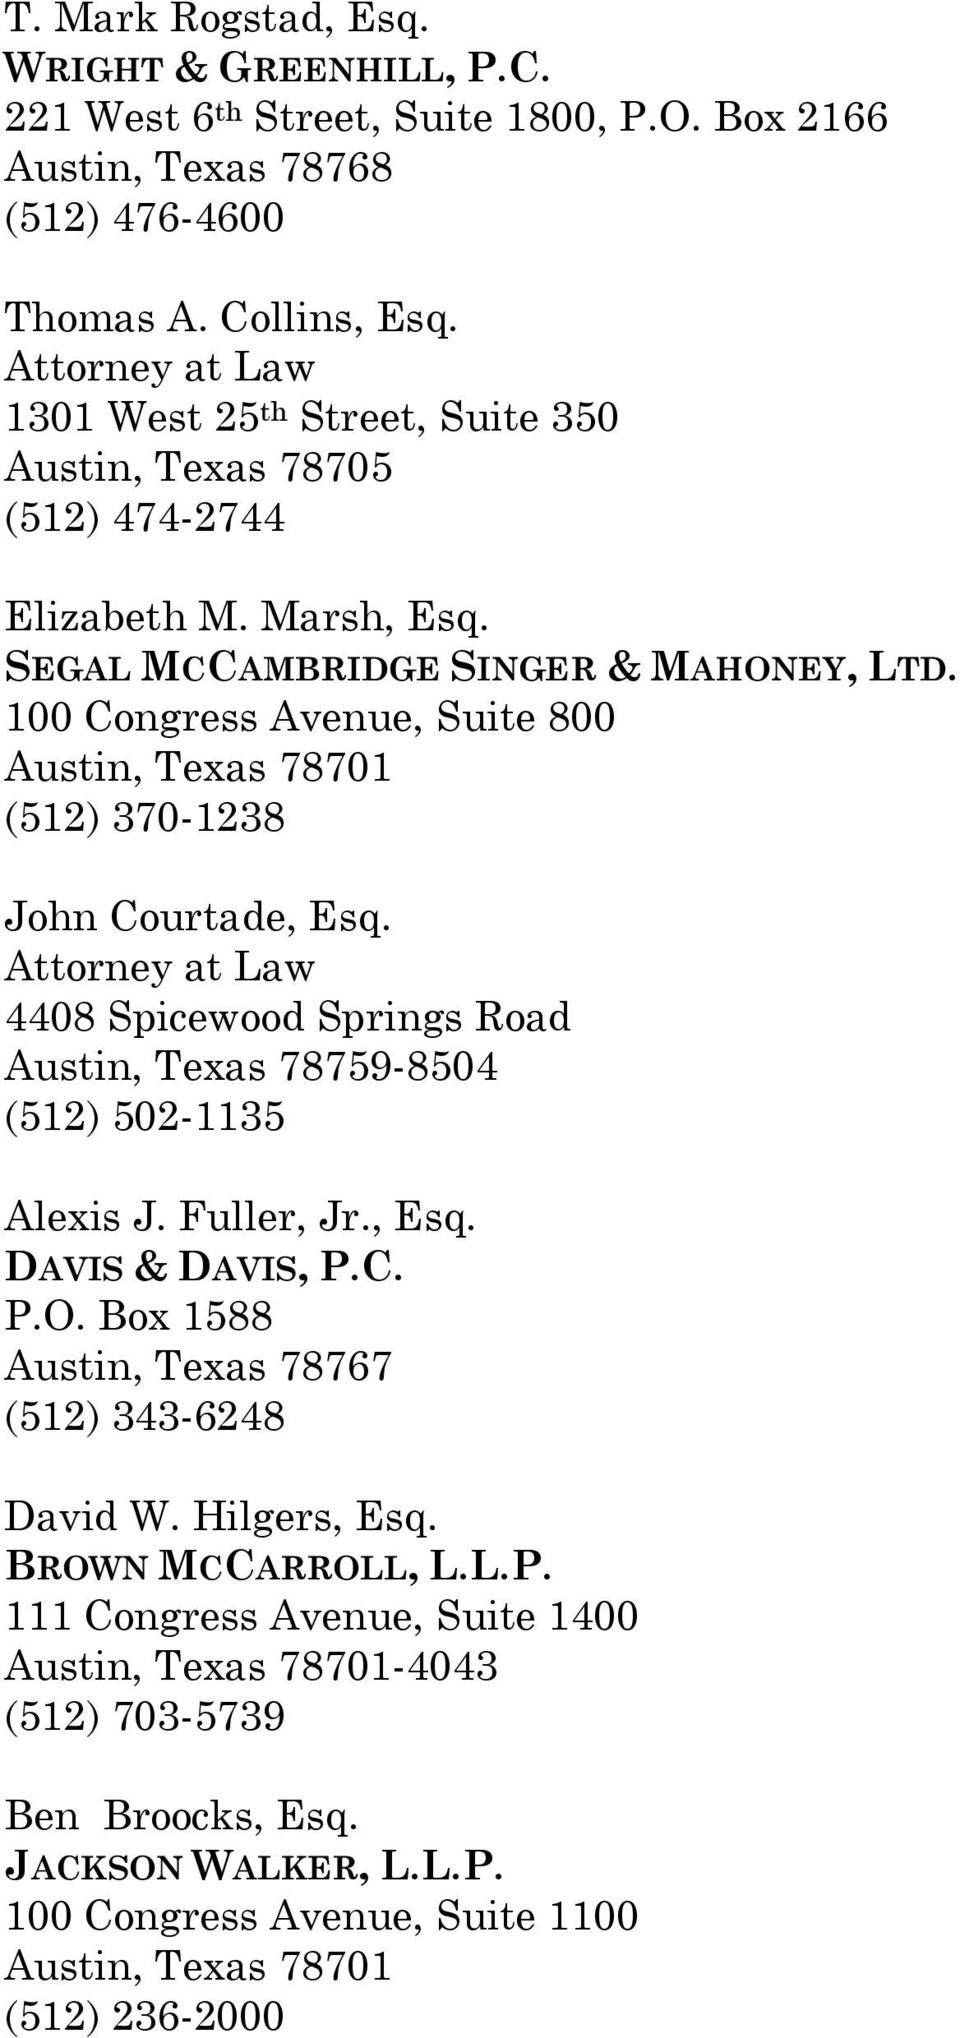 100 Congress Avenue, Suite 800 Austin, Texas 78701 (512) 370-1238 John Courtade, Esq. Attorney at Law 4408 Spicewood Springs Road Austin, Texas 78759-8504 (512) 502-1135 Alexis J. Fuller, Jr., Esq. DAVIS & DAVIS, P.